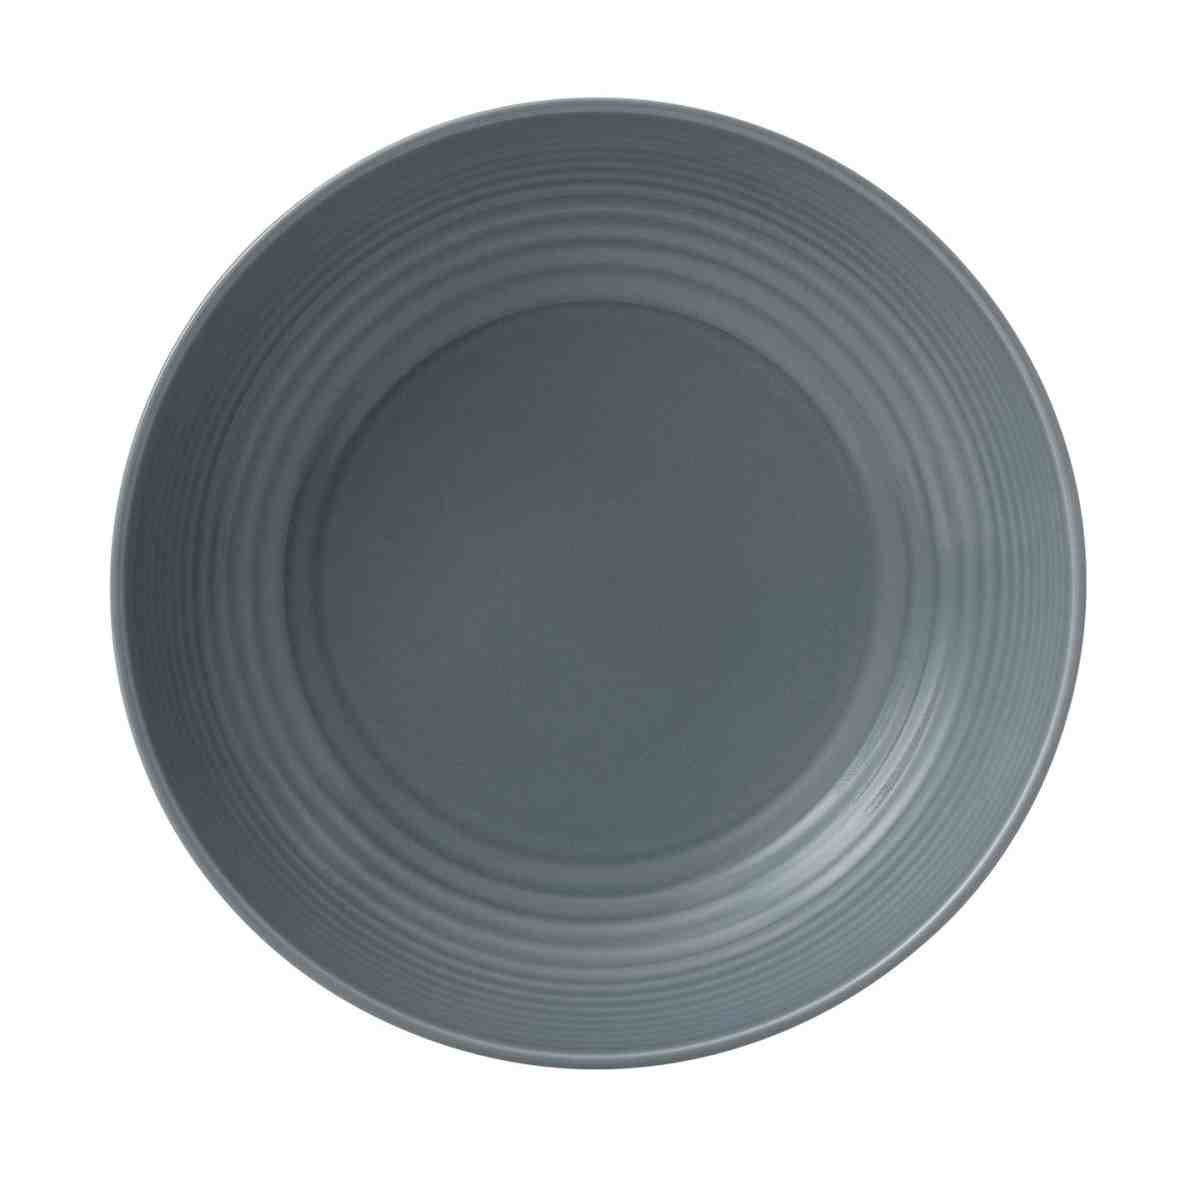 Gordon Ramsay MAZE Dark Grey Pasta Bowls | Set of 4